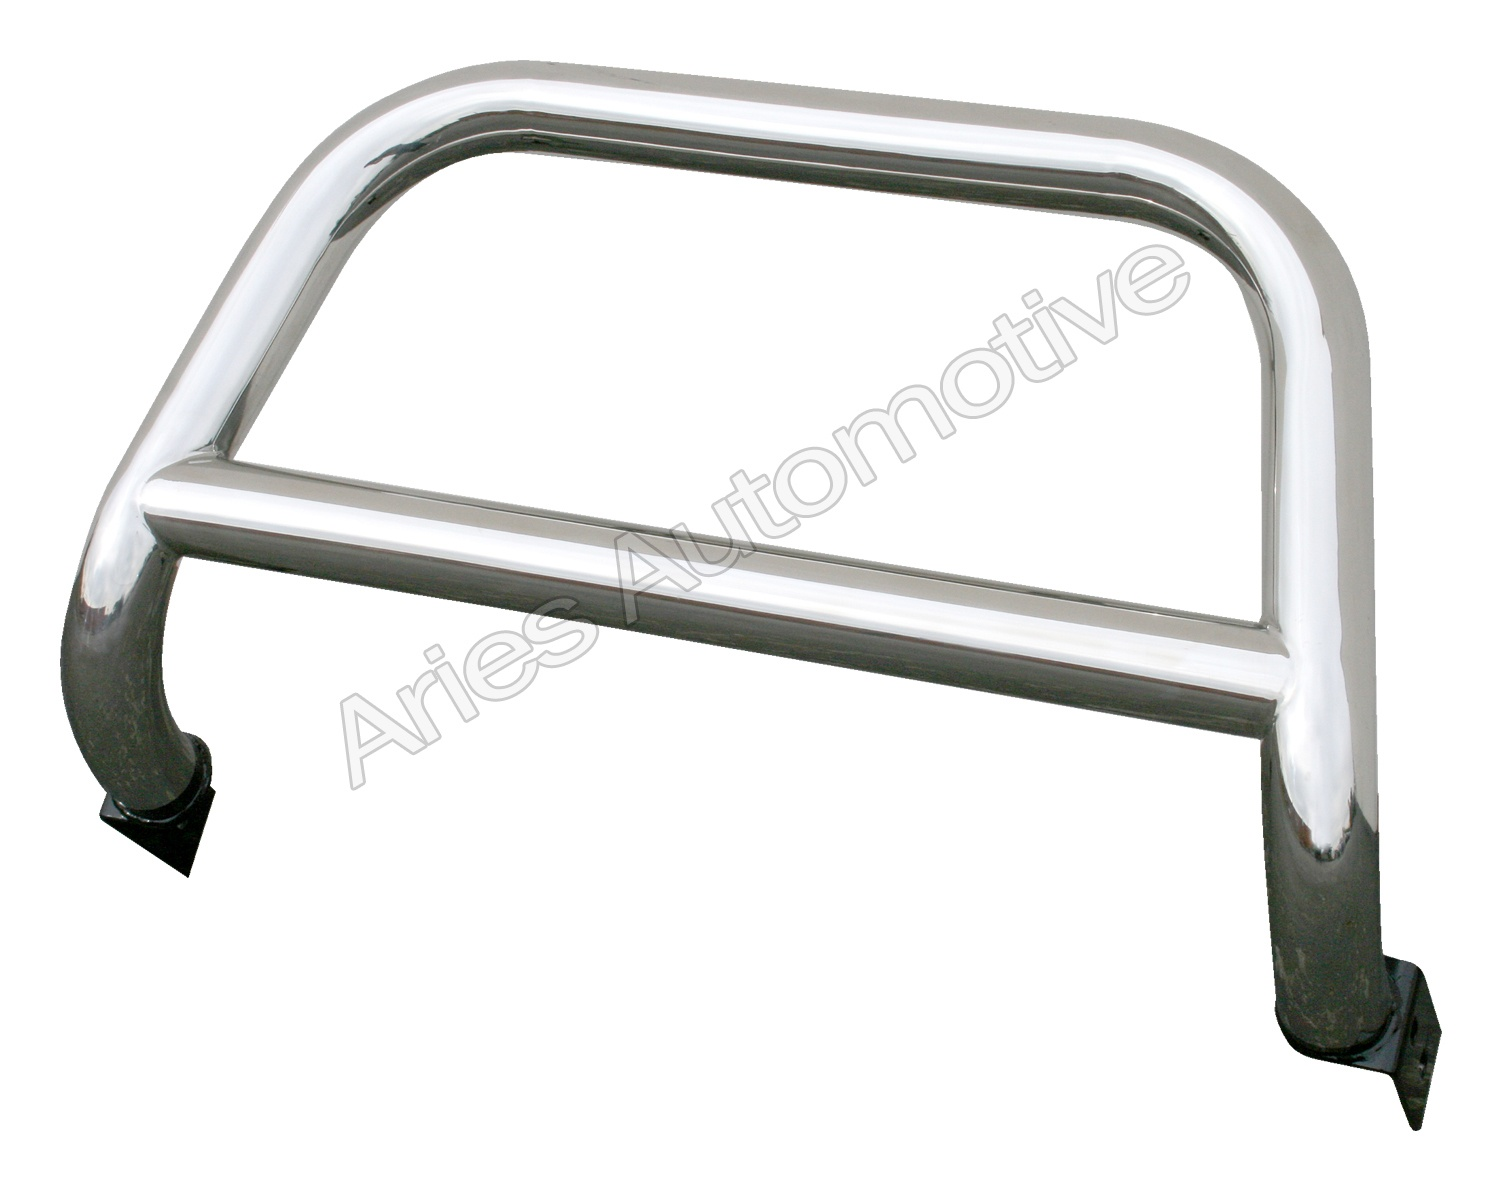 Aries Offroad Offroad 3503 Sport Bar  Push Bar  2.5 in. Diameter Tube  Stainless Steel at Sears.com